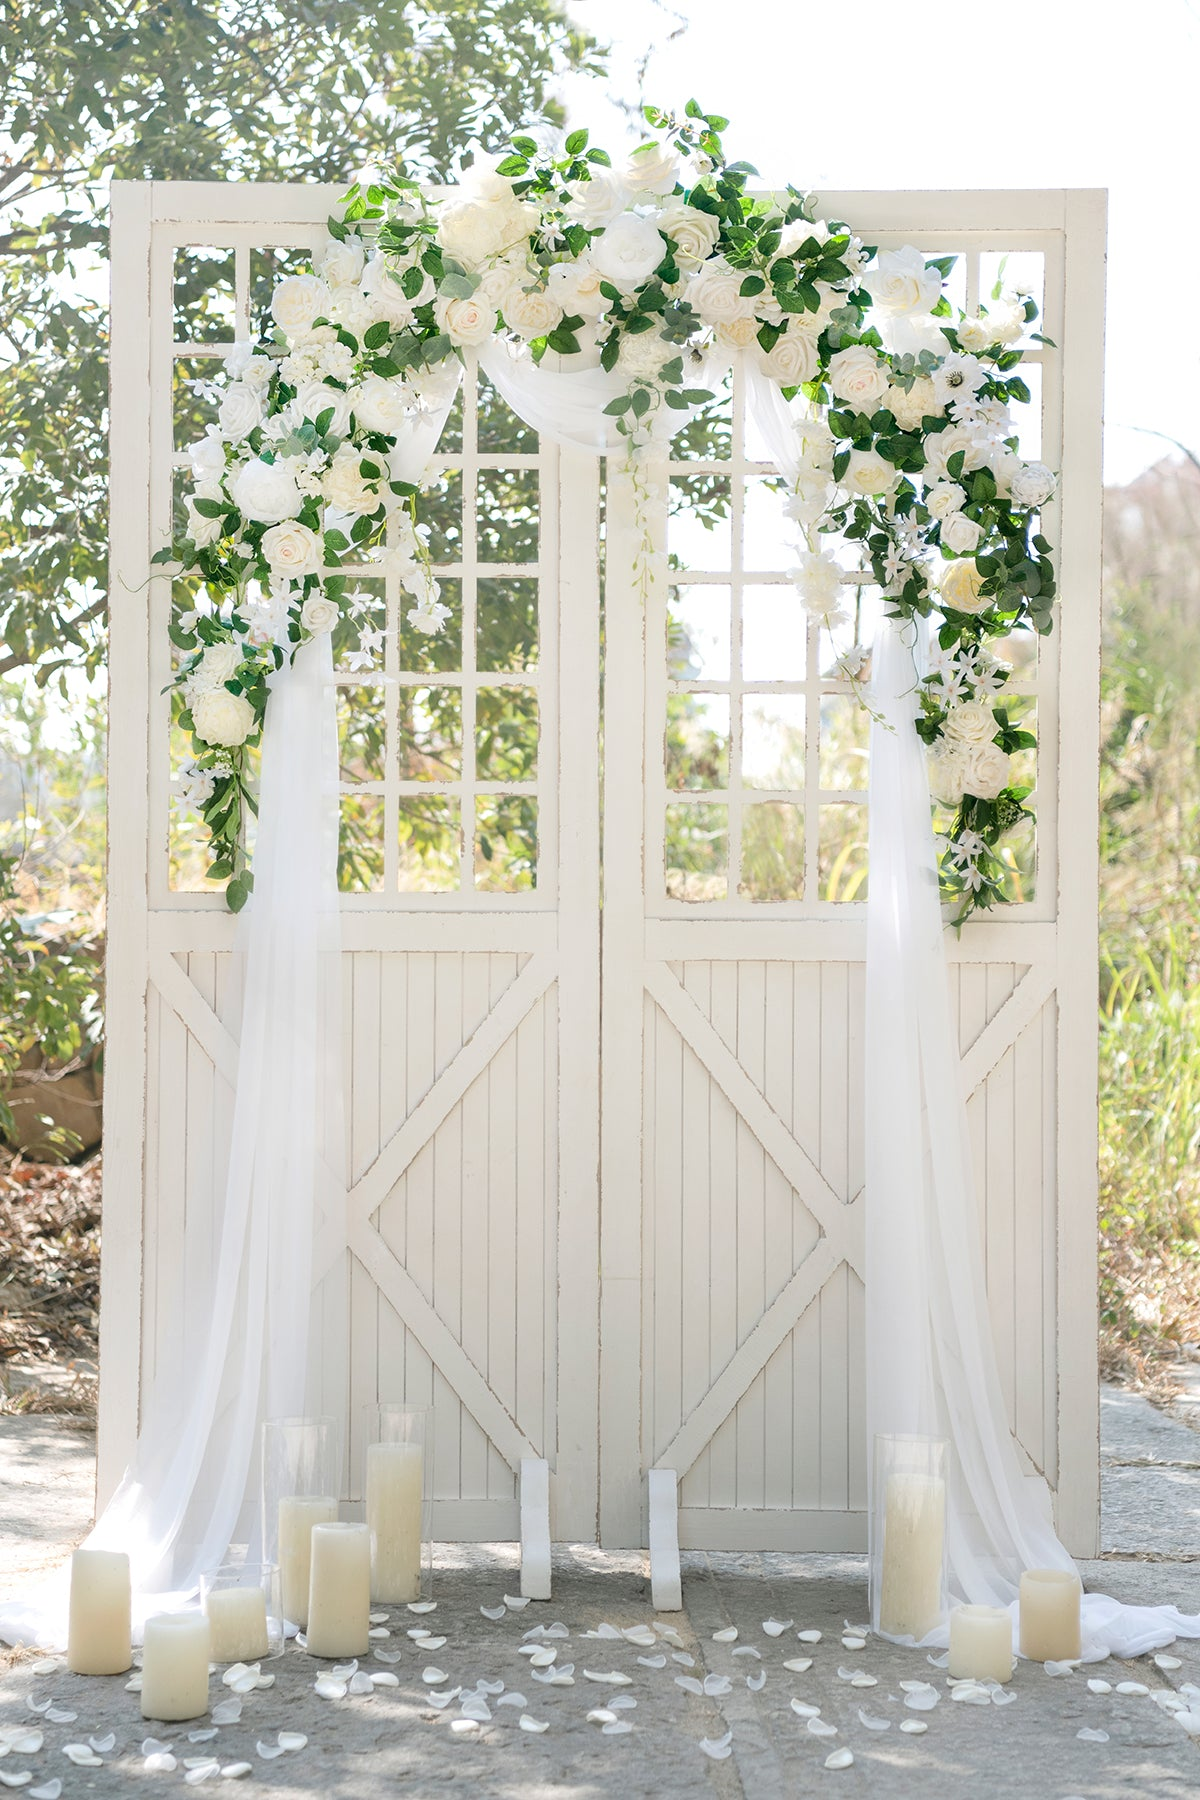 Flower Garland Arch Décor with Sheer Drape (Pack of 4) - Ivory